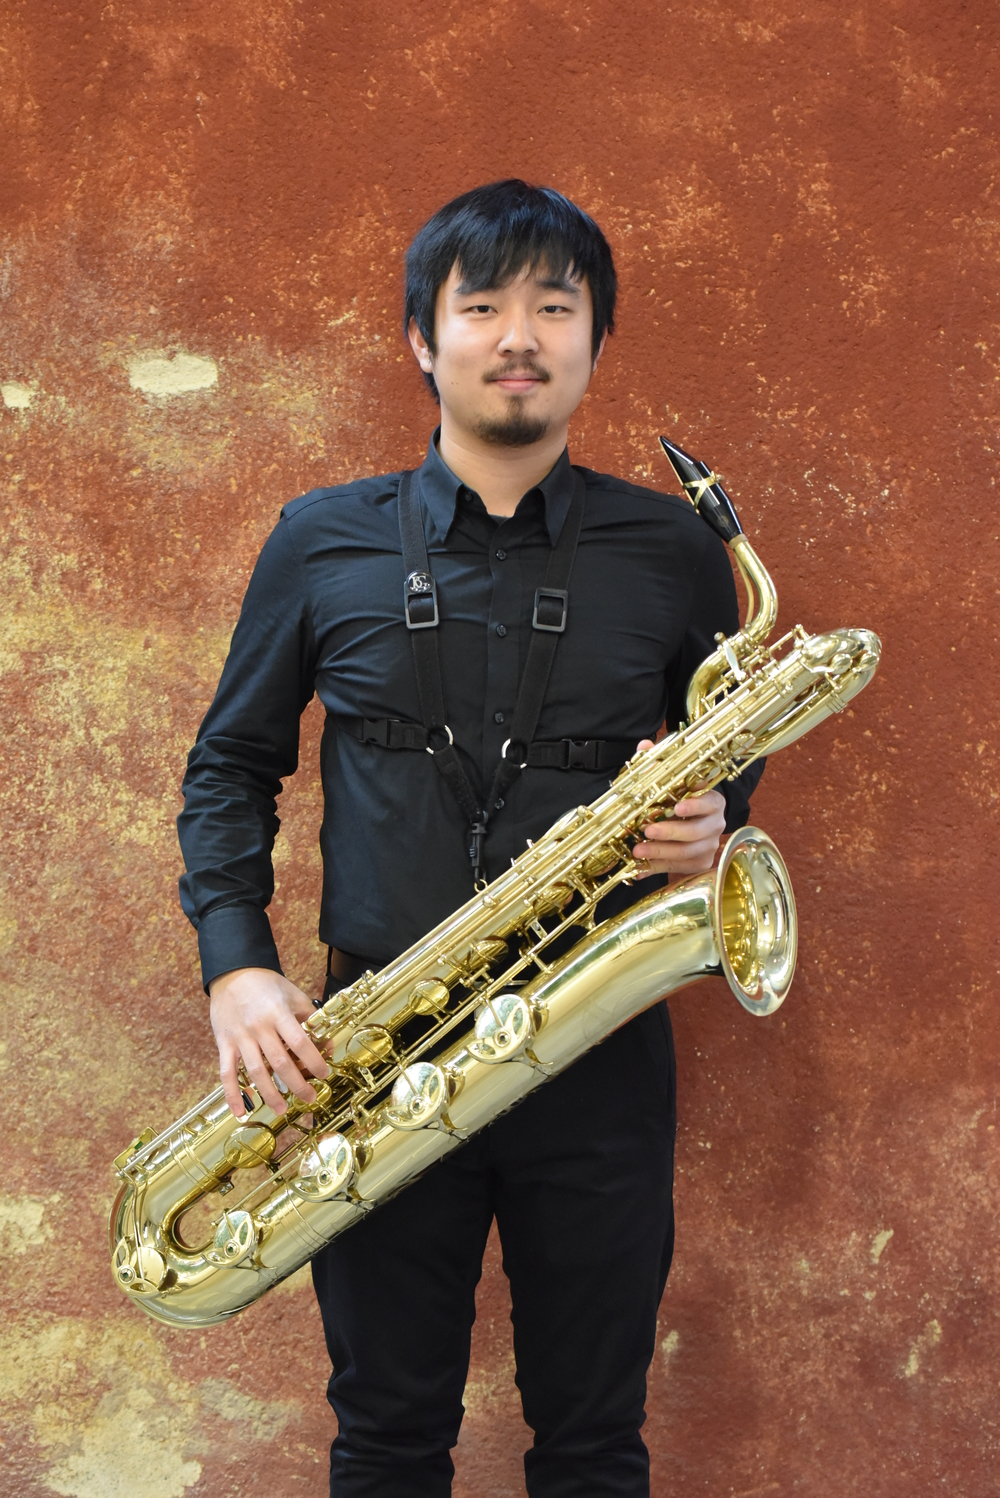 He has also participle numbers of composition studio work with renowned composers such as Luis Naon, Claude Ledoux, Francois Rosse etc.